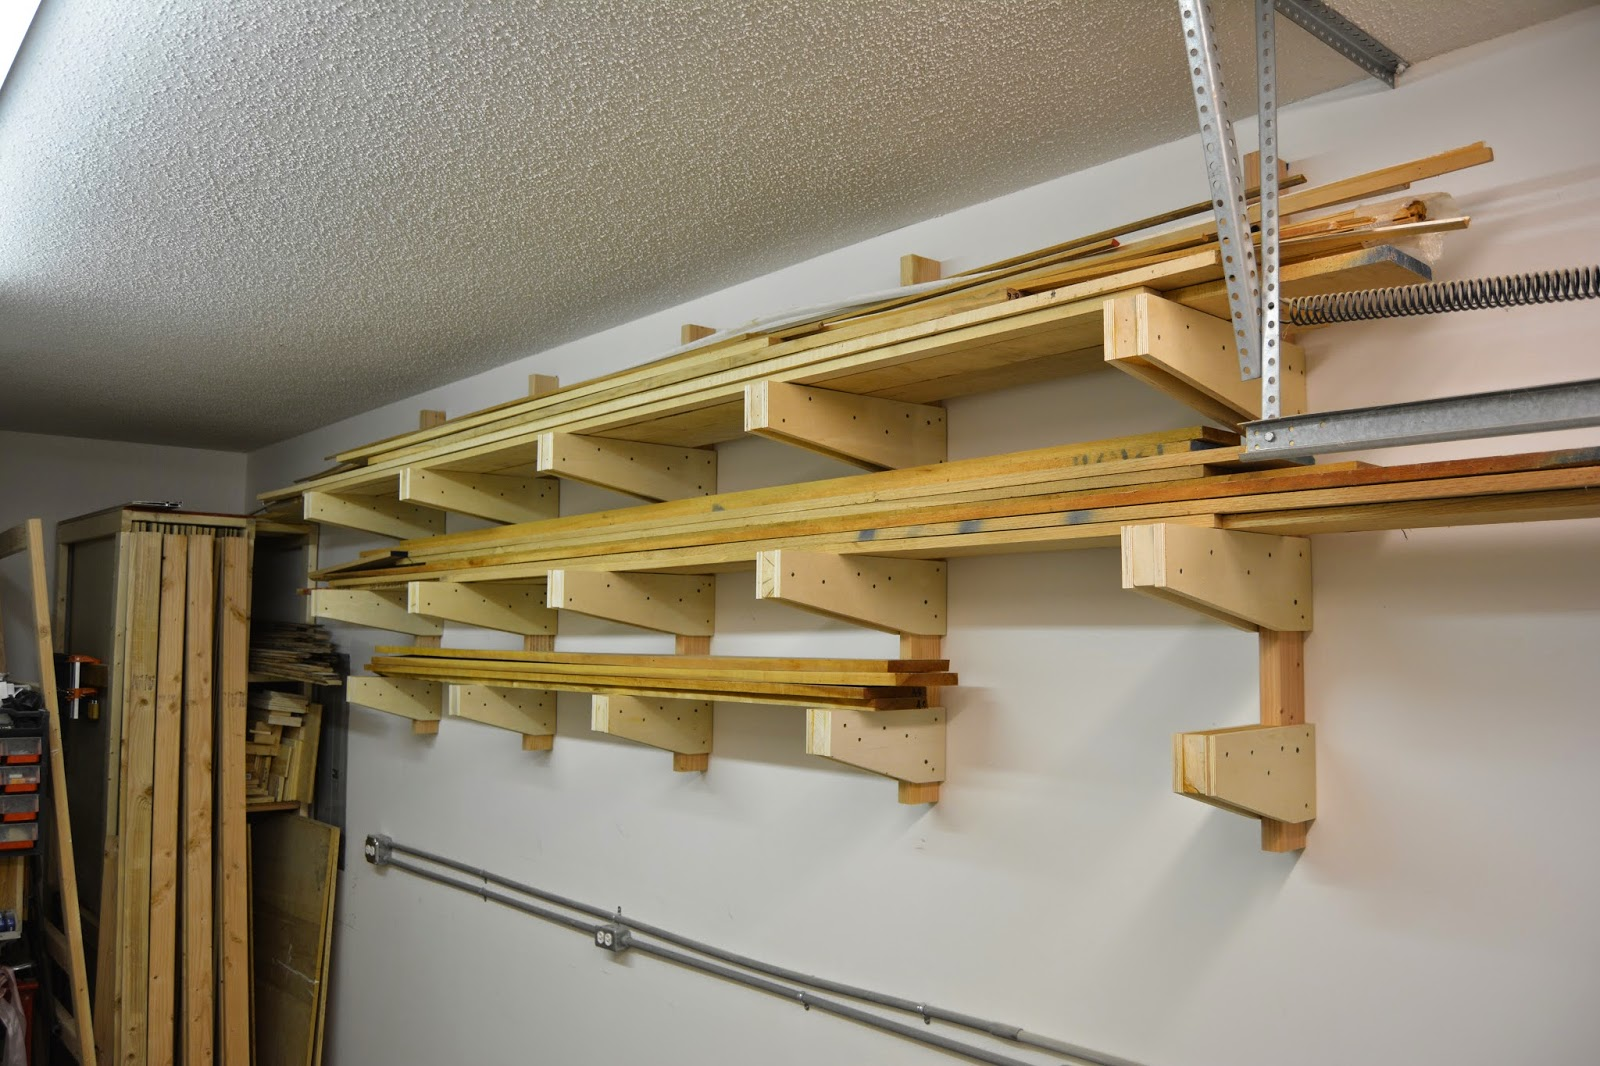 Ana White Lumber Rack Diy Projects